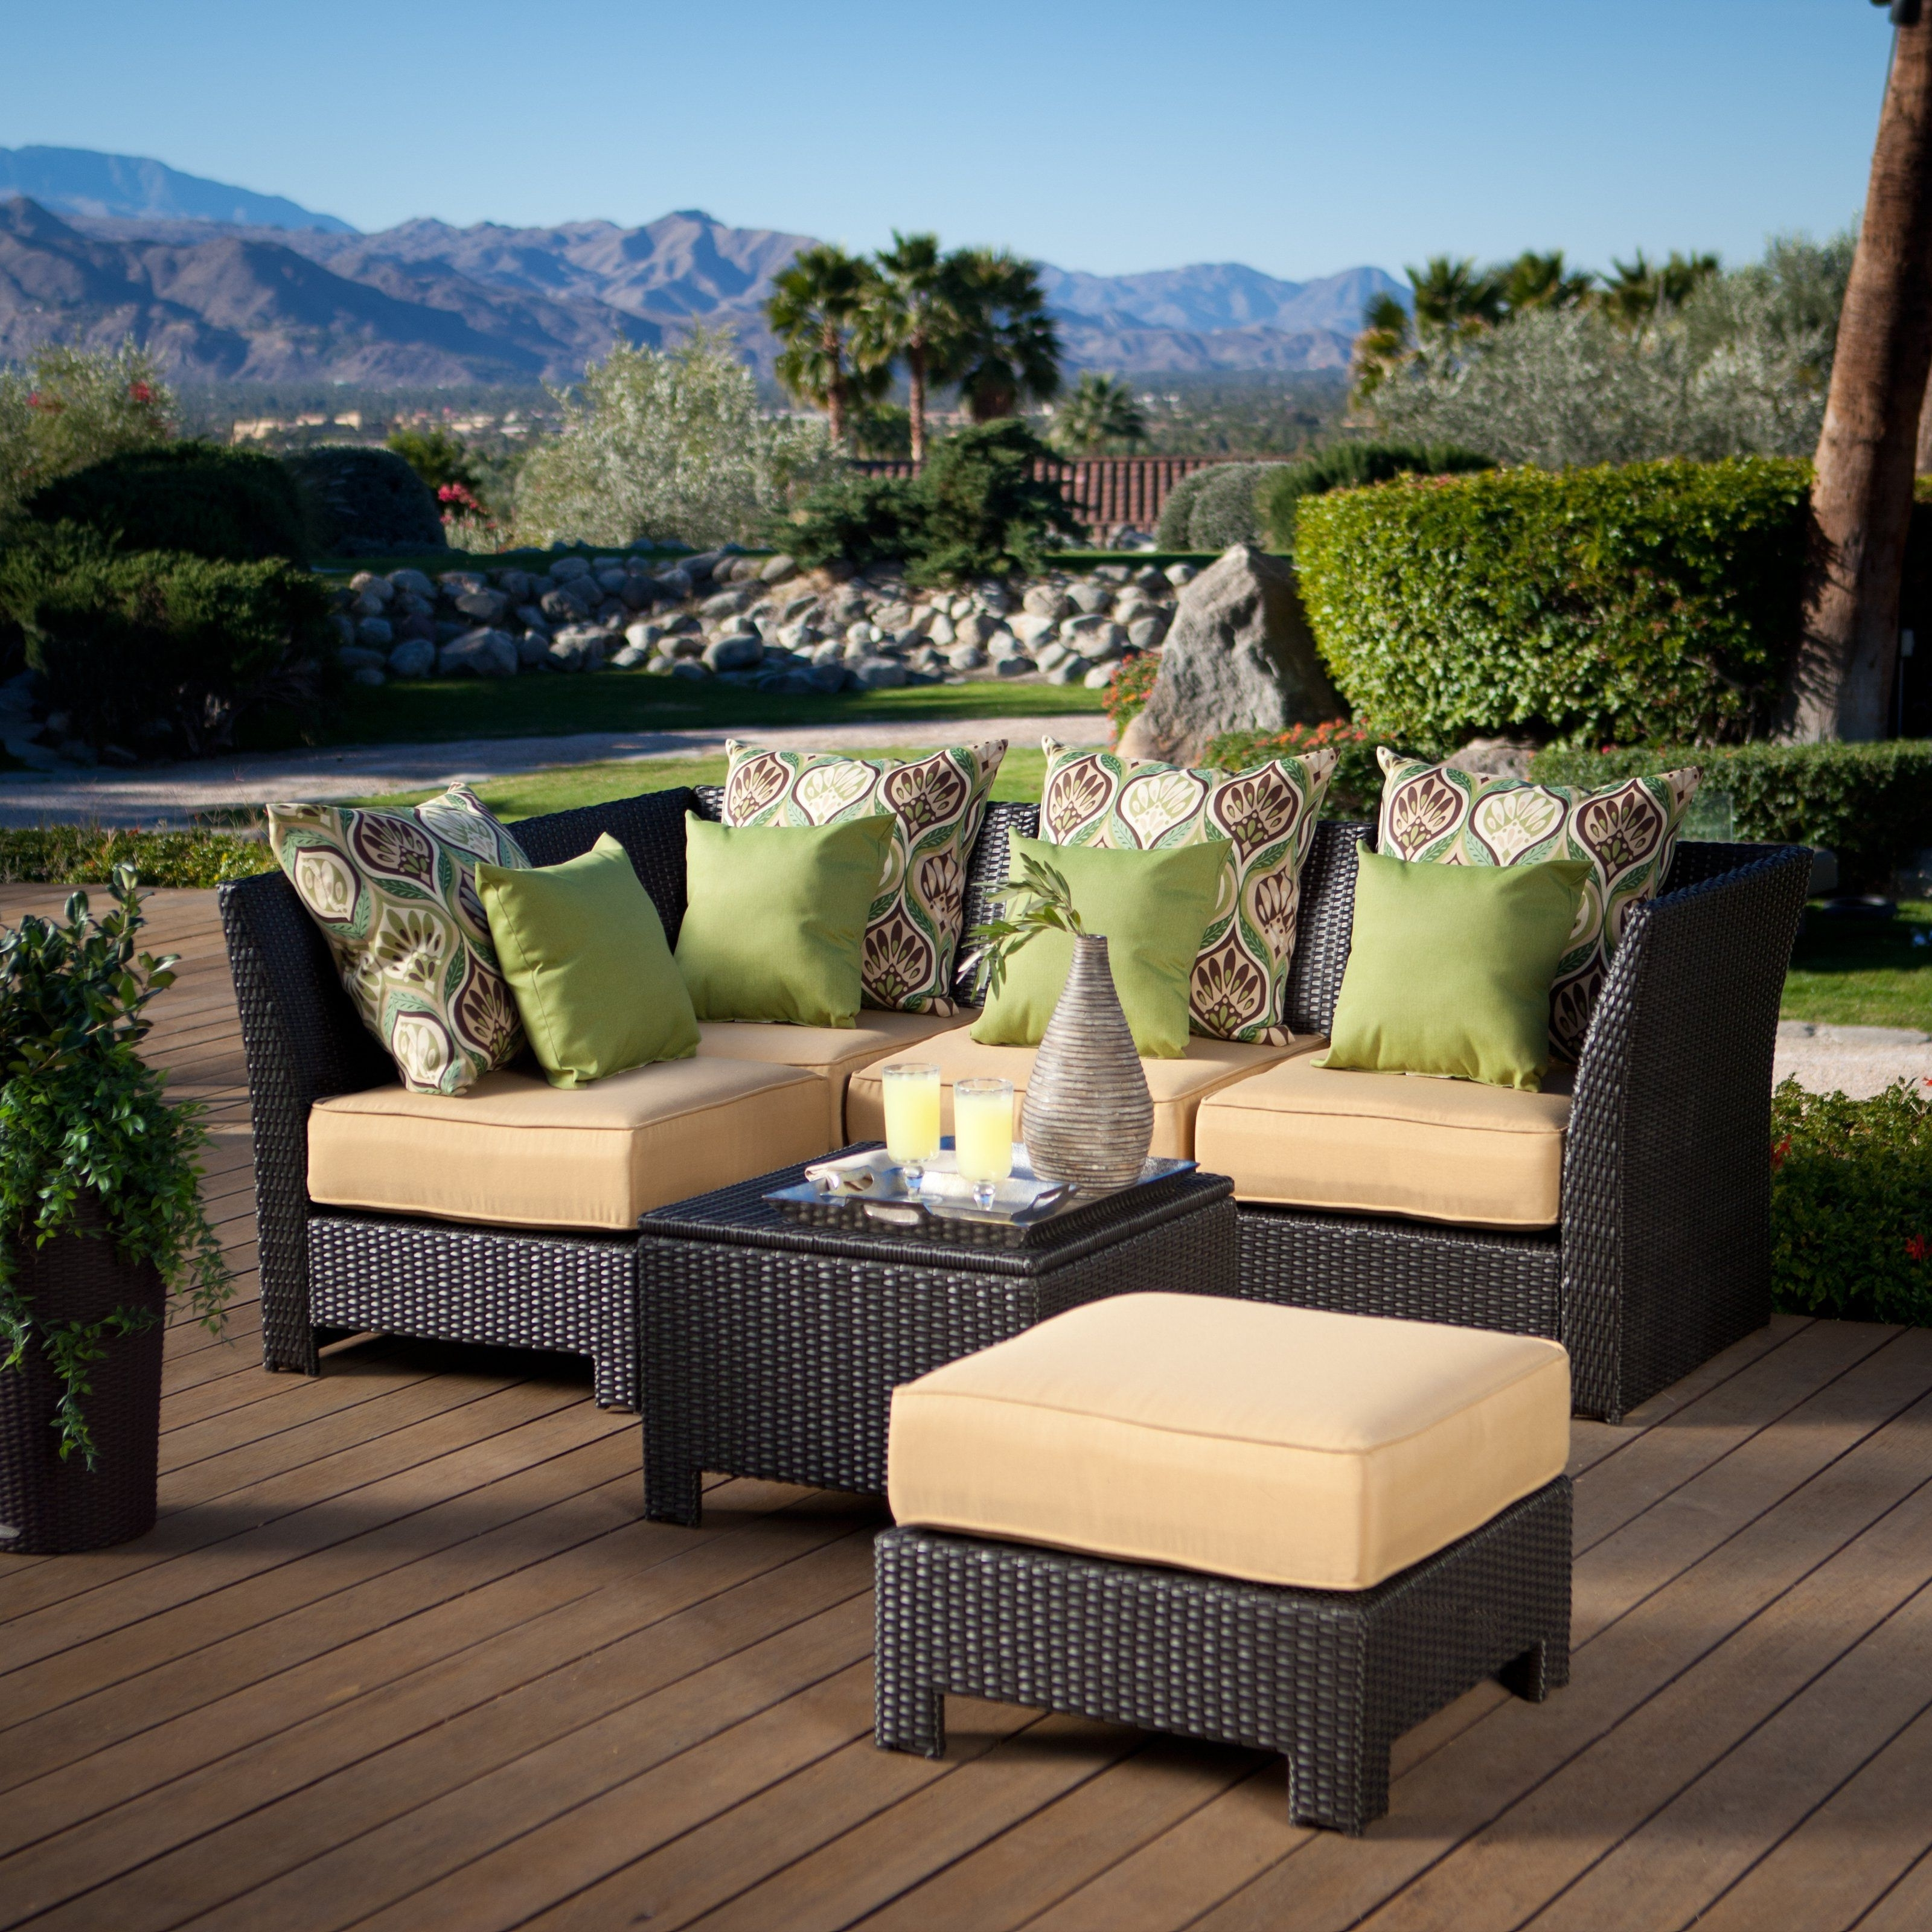 Fashionable Outdoor Patio Furniture Conversation Sets In Have To Have It (View 6 of 20)